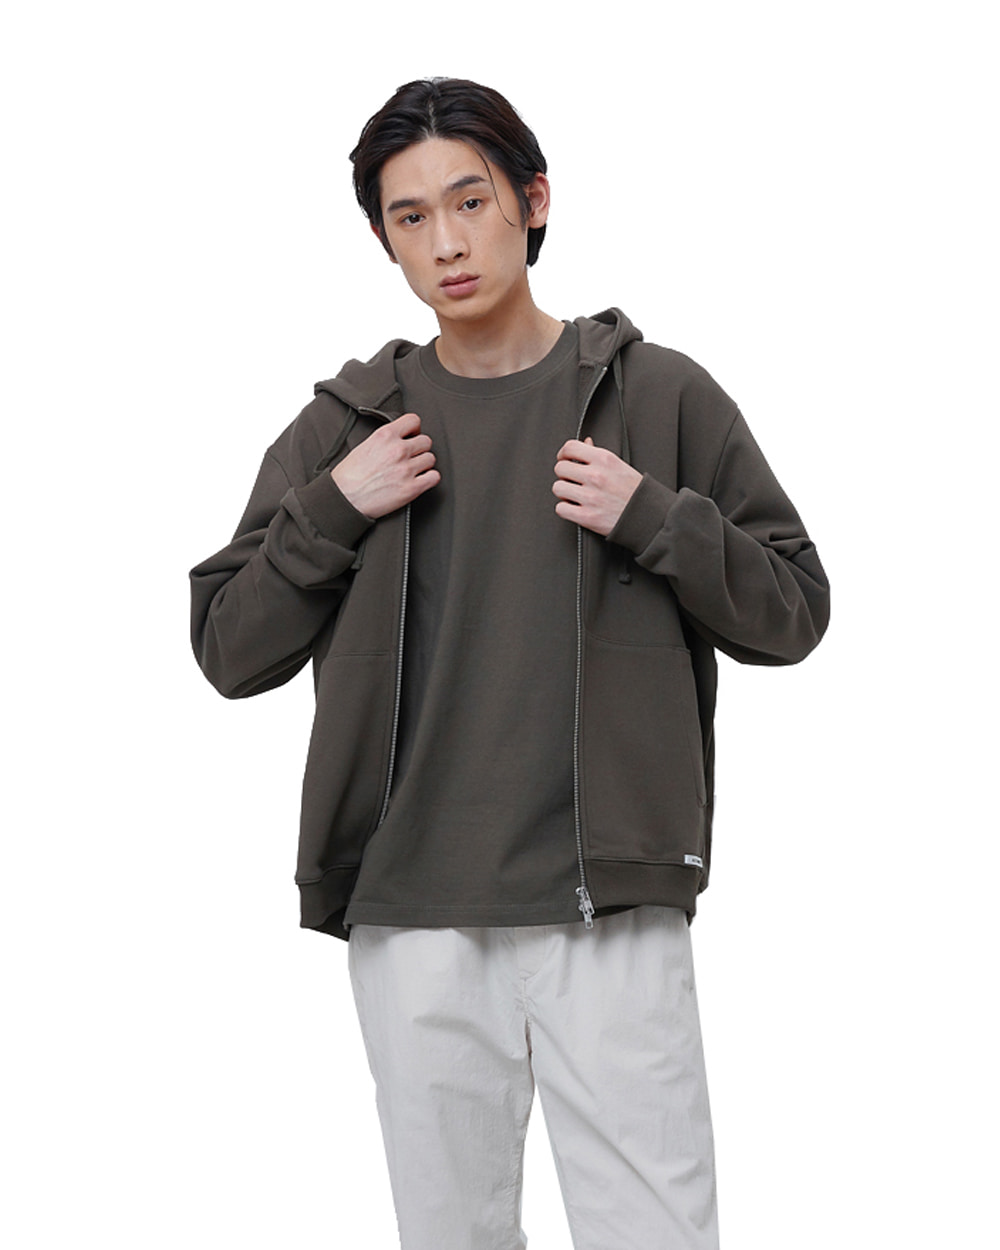 에이카화이트 FINEST COTTON ZIP UP HOODIE (Olive)